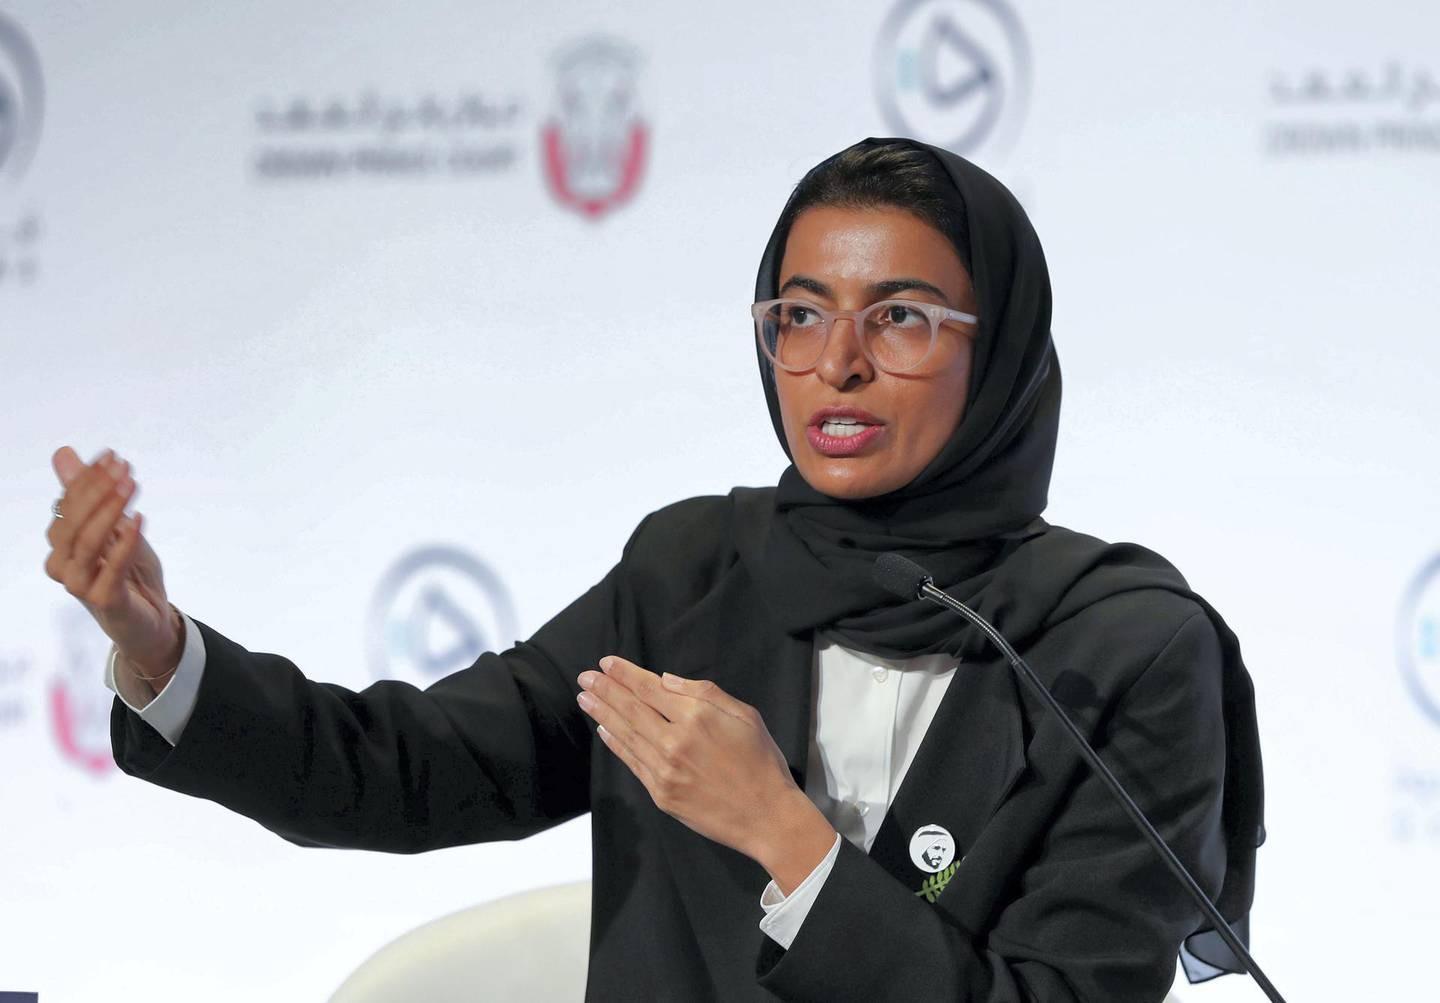 Abu Dhabi, United Arab Emirates - October 06, 2019: The Power of Culture in Knowledge Development with H.E. Noura bint Mohammed Al Kaabi, Minister of Culture and Knowledge Development, UAE. Qudwa is a forum for teachers, by teachers that aims to elevate the teaching profession in the UAE. Sunday the 6th of October 2019. Manarat Al Saadiyat, Abu Dhabi. Chris Whiteoak / The National